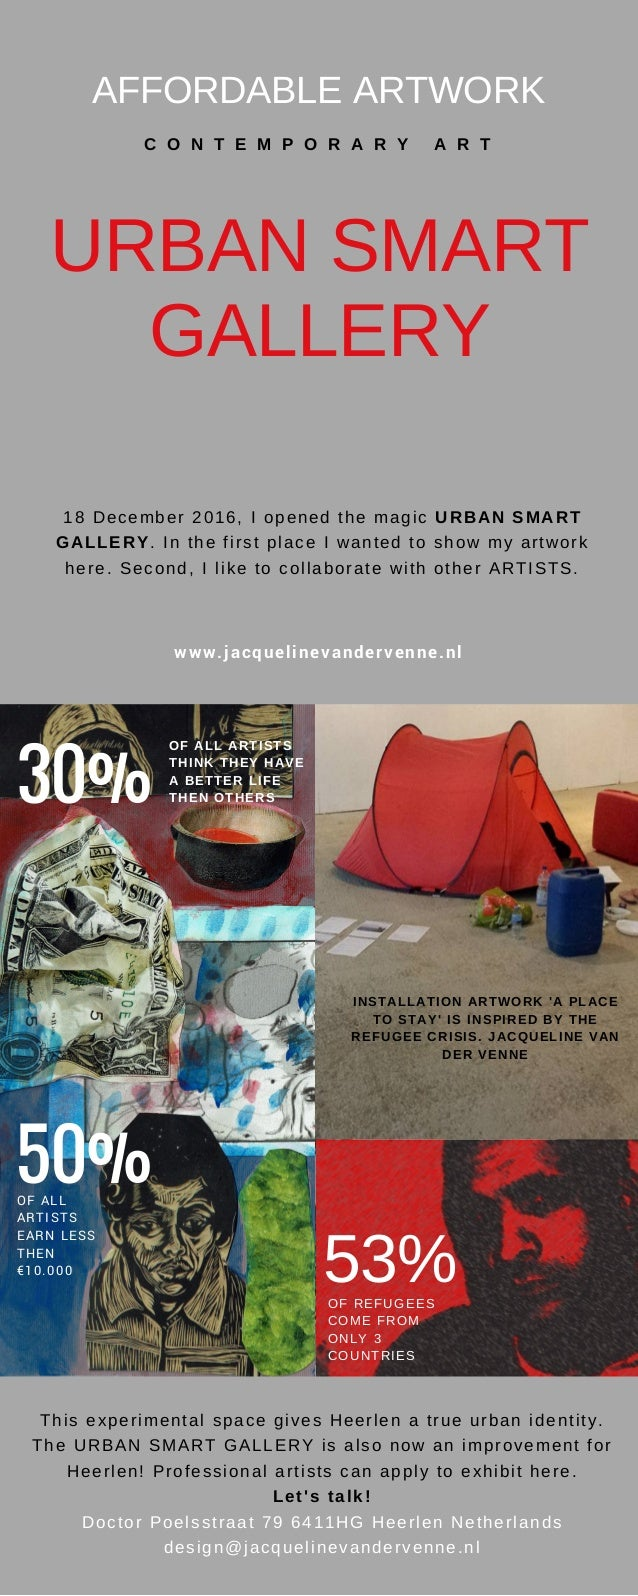 AFFORDABLE ARTWORK C O N T E M P O R A R Y A R T URBAN SMART GALLERY This experimental space gives Heerlen a true urban id...